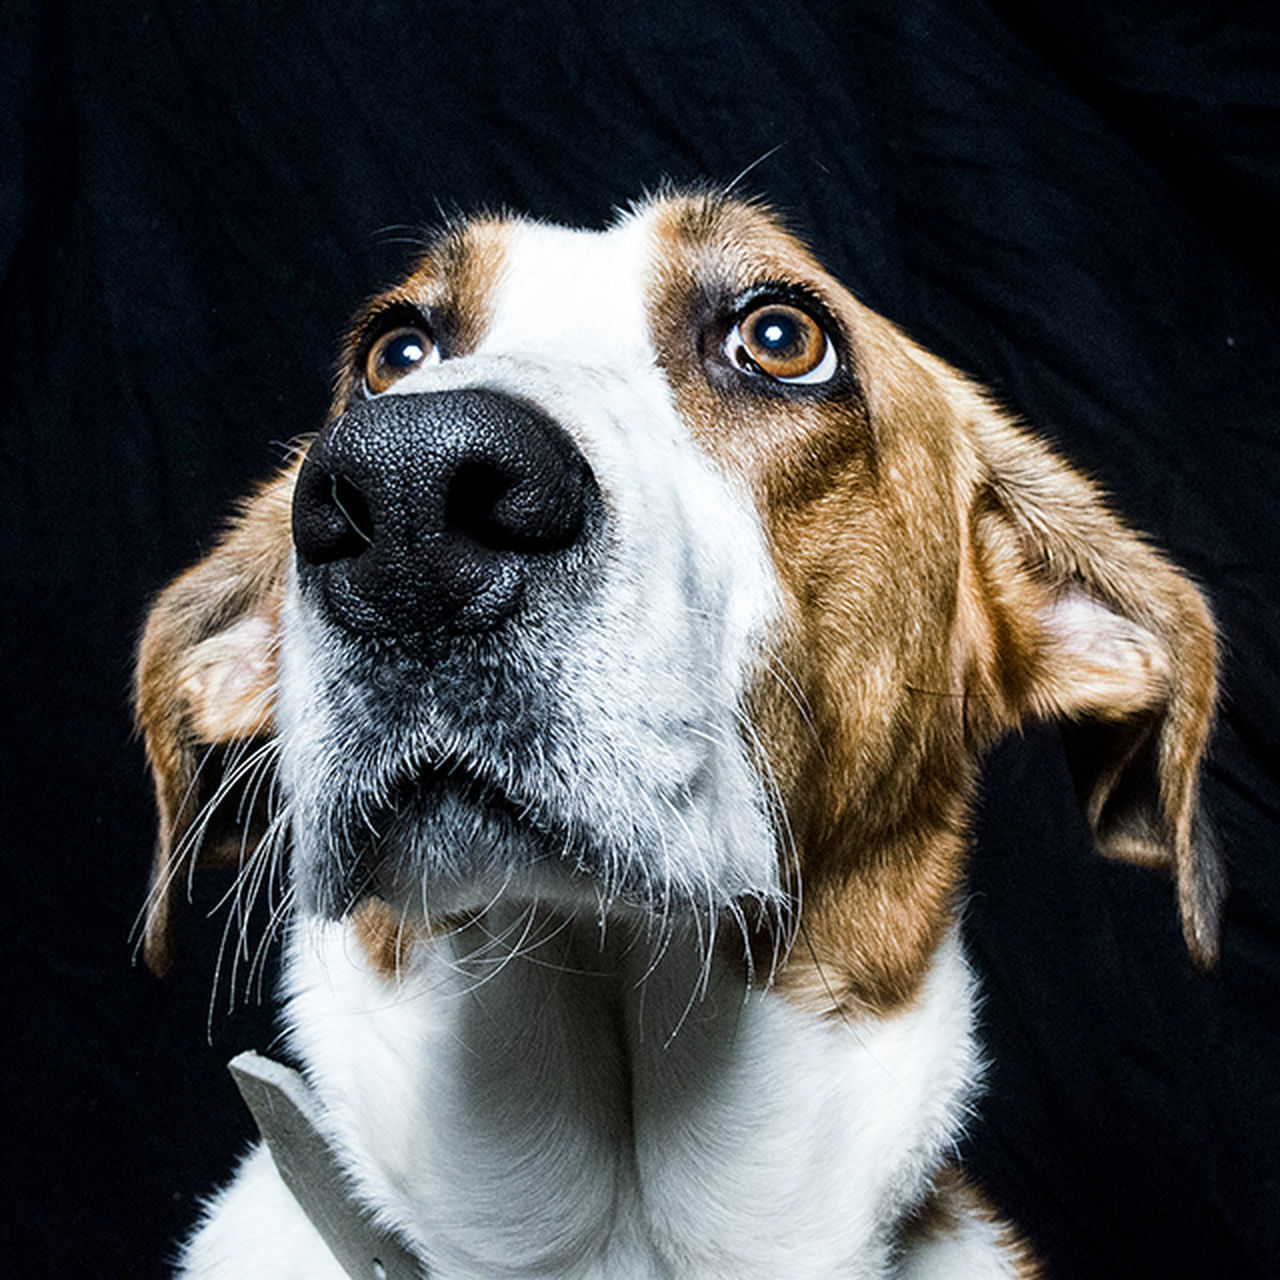 dog, pets, domestic animals, animal themes, mammal, one animal, no people, close-up, black background, day, indoors, beagle